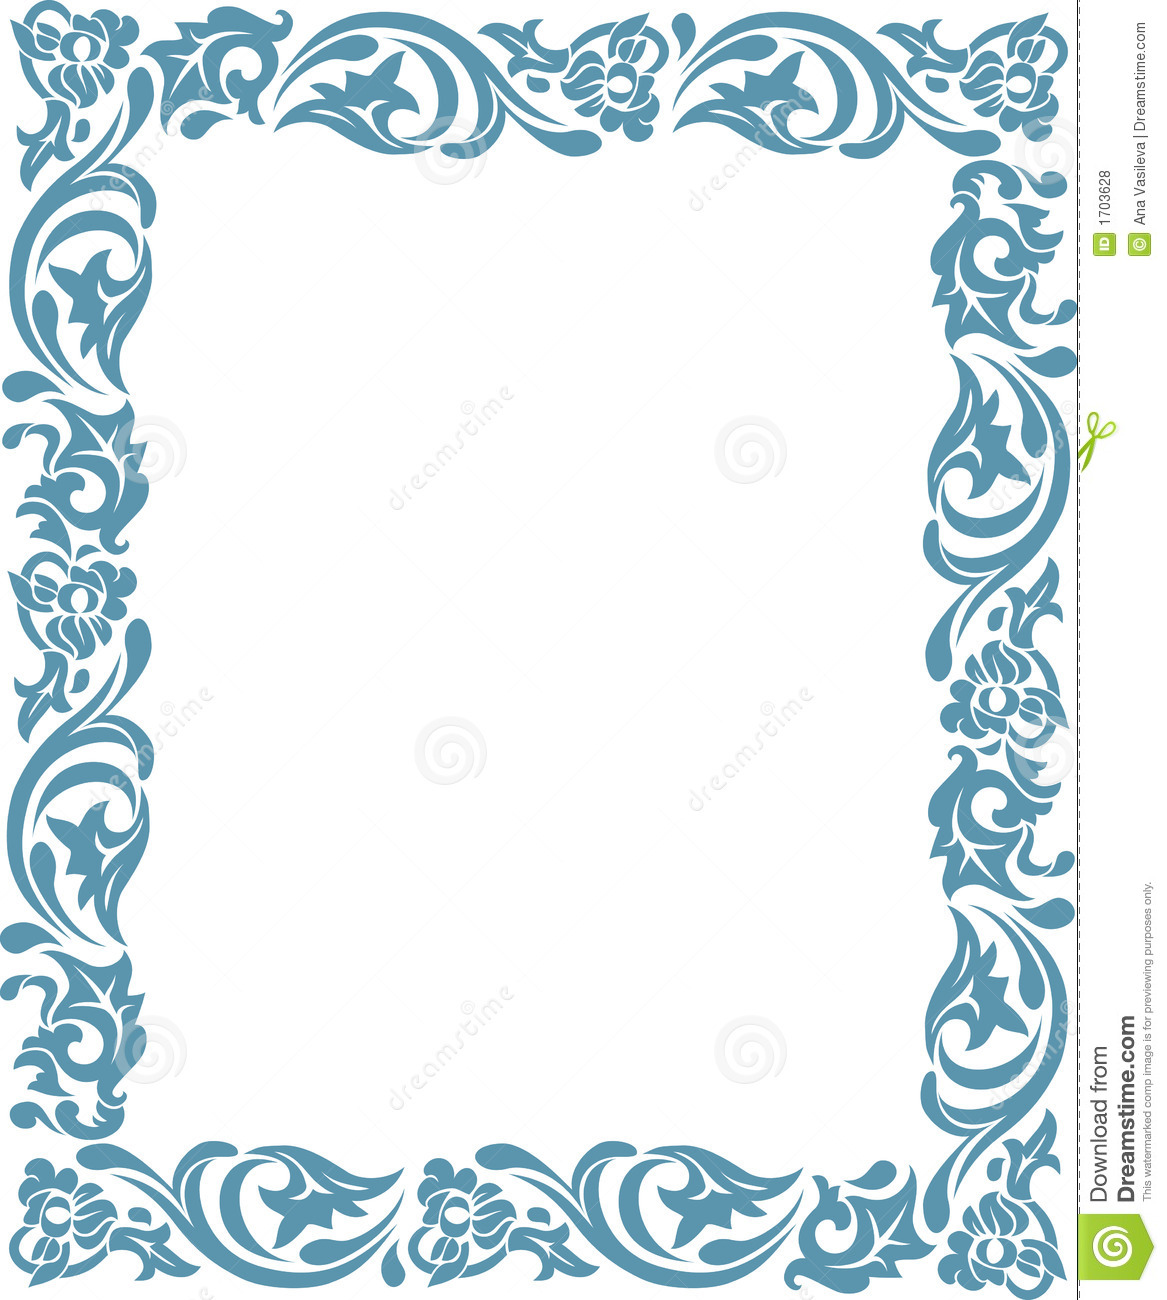 united states 4 corners area with Royalty Free Stock Photos Frame Floral Ornaments Image1703628 on Four Corners moreover Royalty Free Stock Photography Baby Border Boy Image14569727 moreover 3D Shape Attributes 1079958 likewise Surveying Four Corners During American additionally Four Corners  Florida.